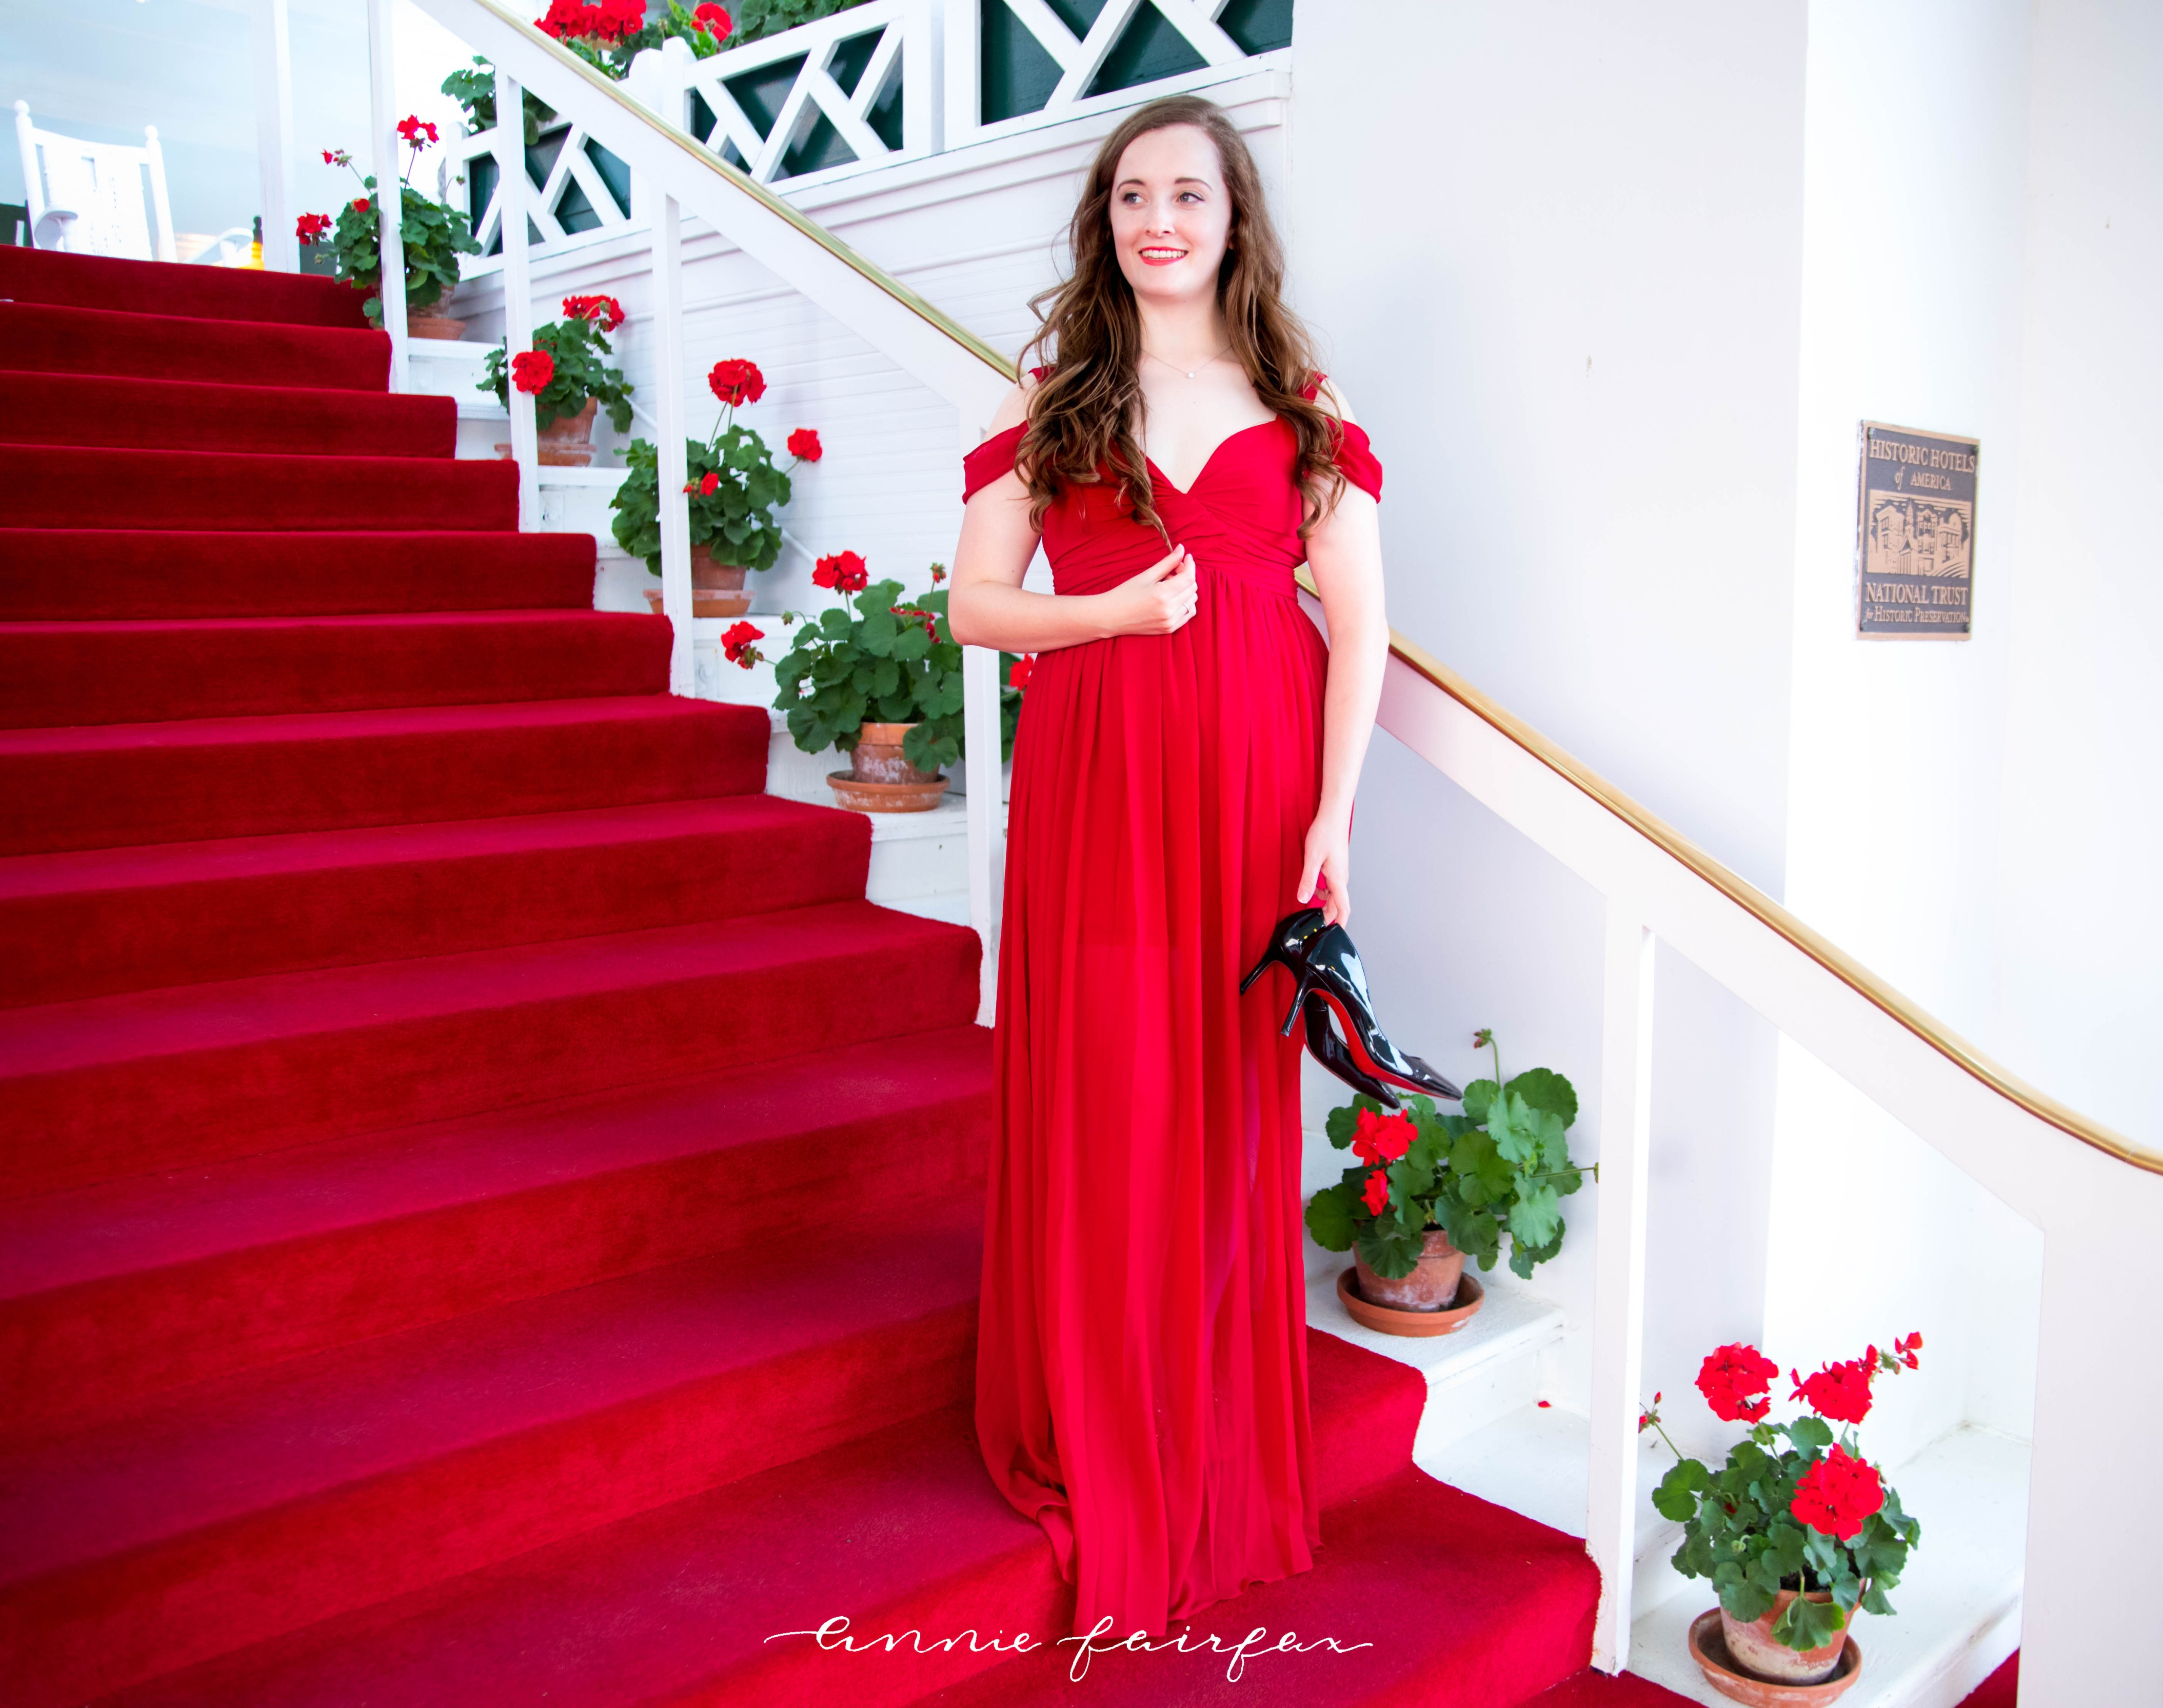 Grand Hotel Mackinac Island Michigan Dress Code What to Wear to Dinner Christian Louboutin Romwe Shein Red Soles Red Carpet Geraniums Red